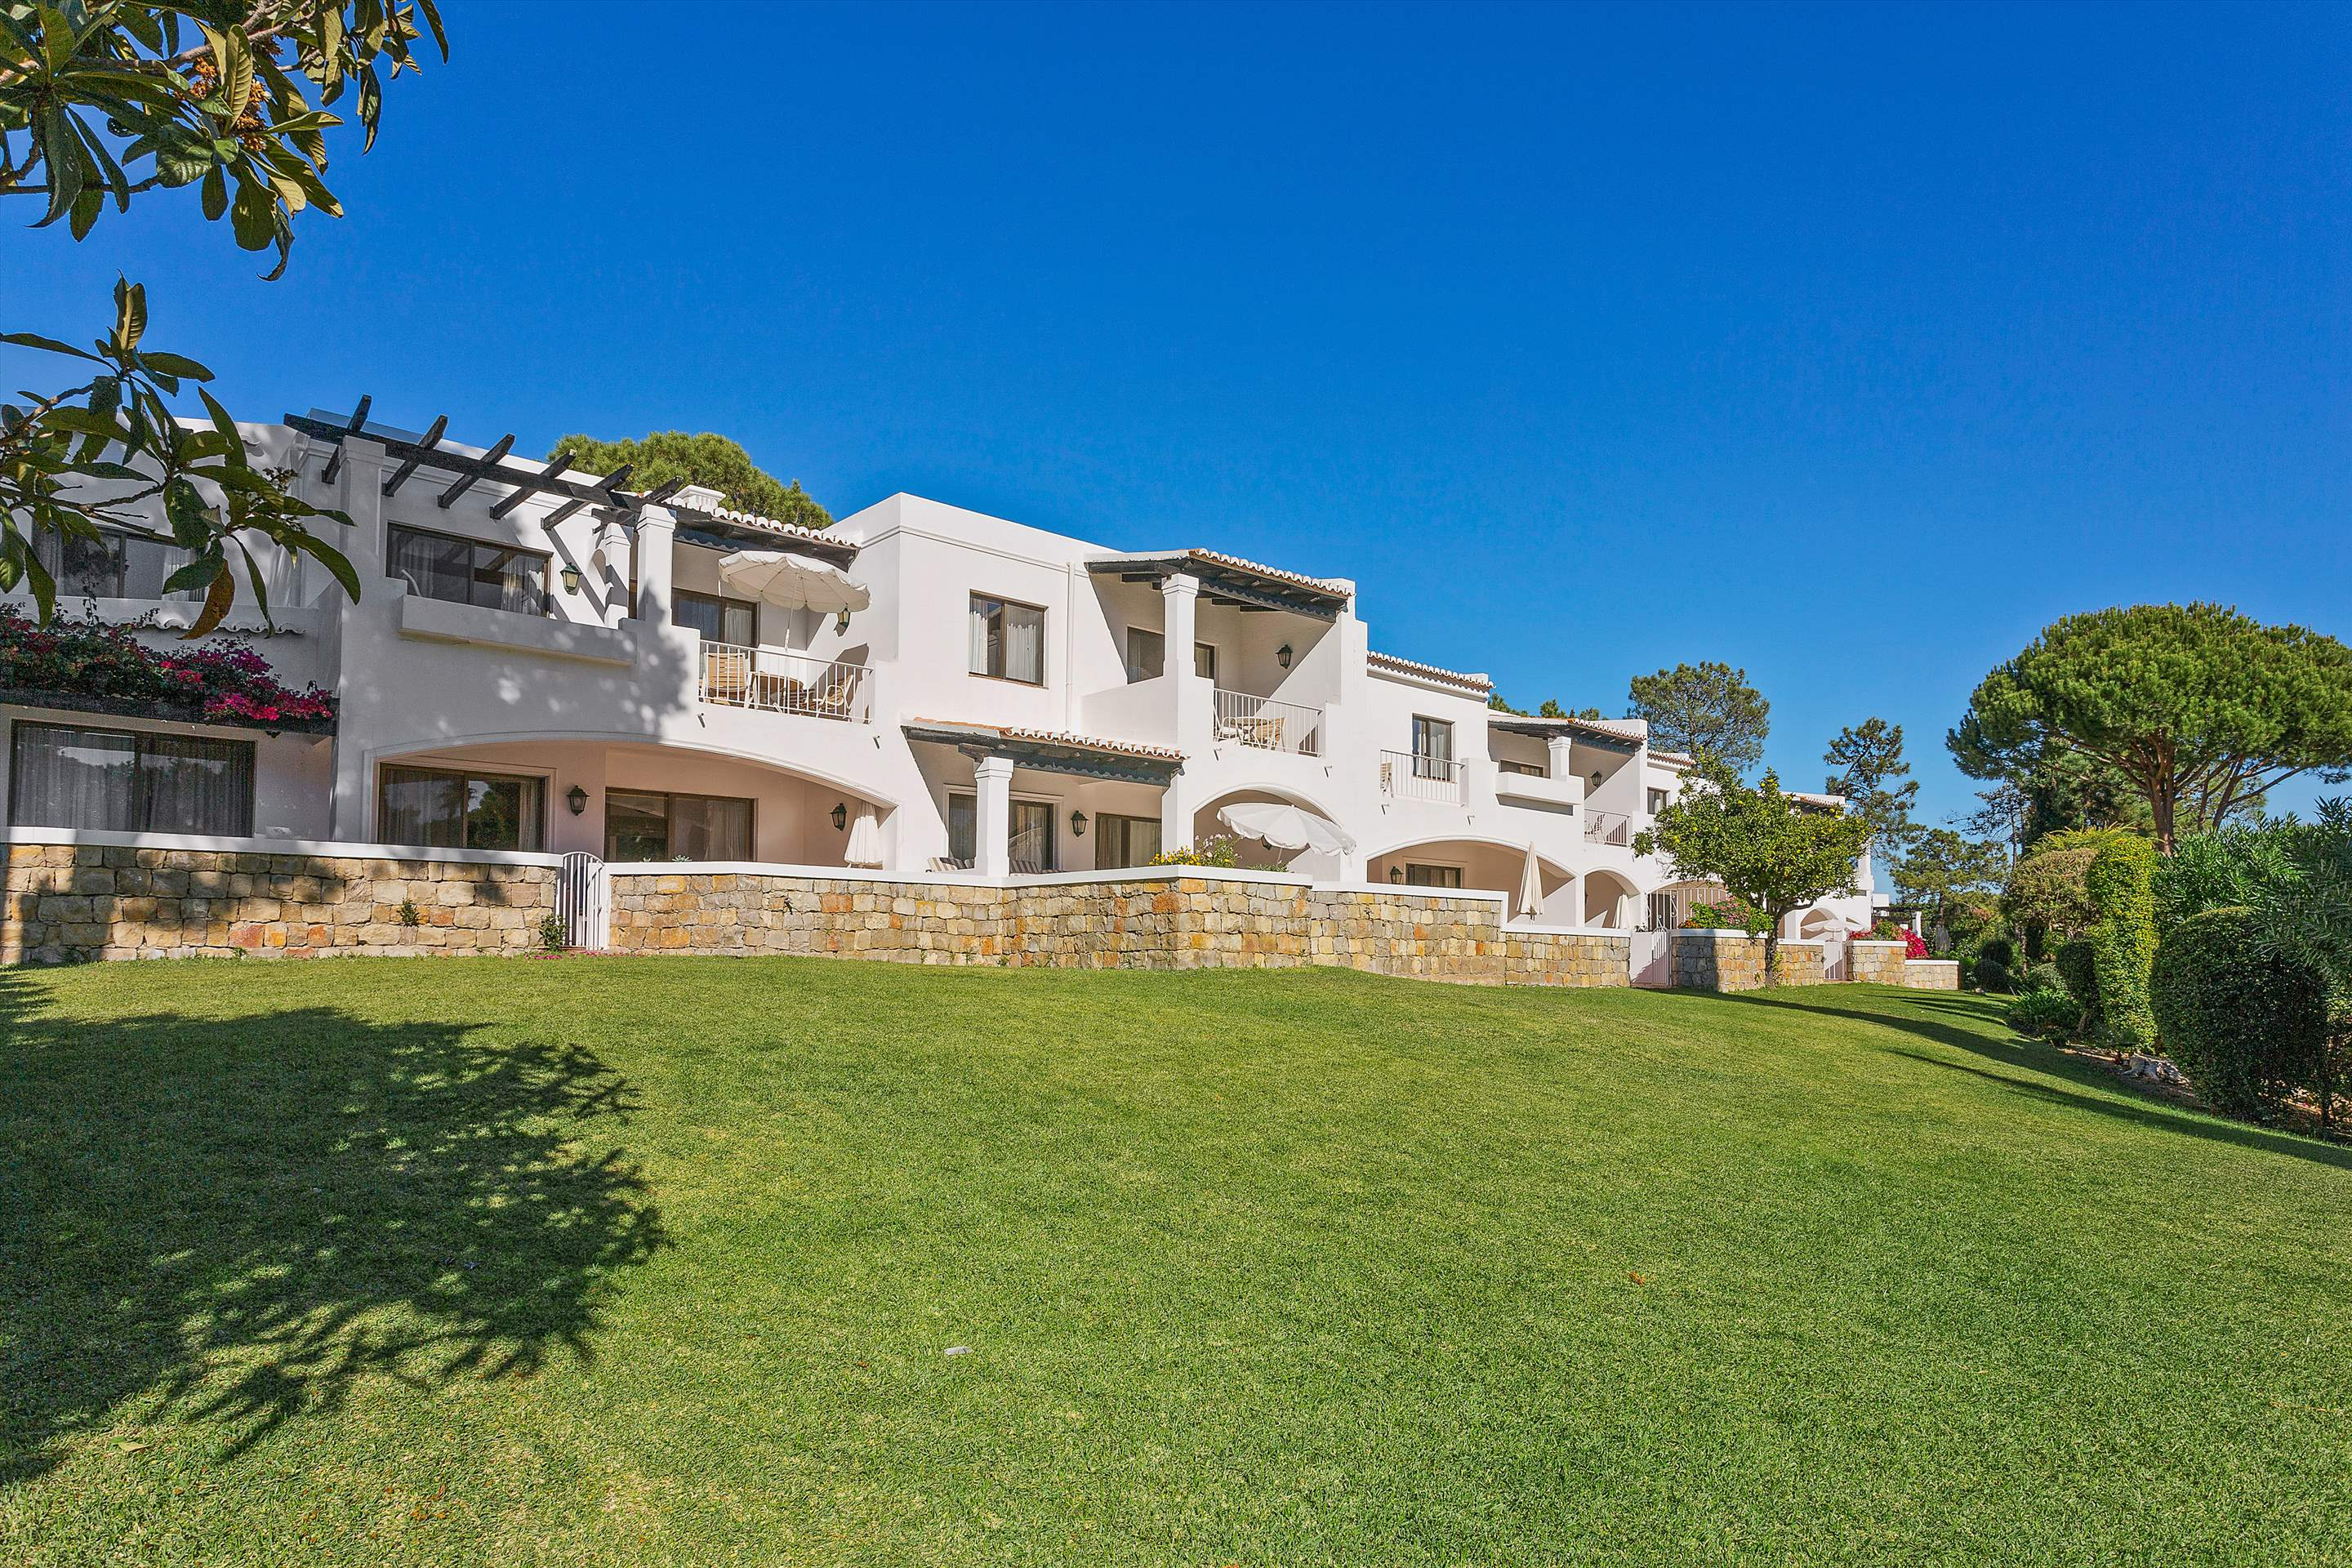 Four Seasons Country Club 2 Bed Townhouse, Superior - Thursday Arrival, 2 bedroom apartment in Four Seasons Country Club, Algarve Photo #1